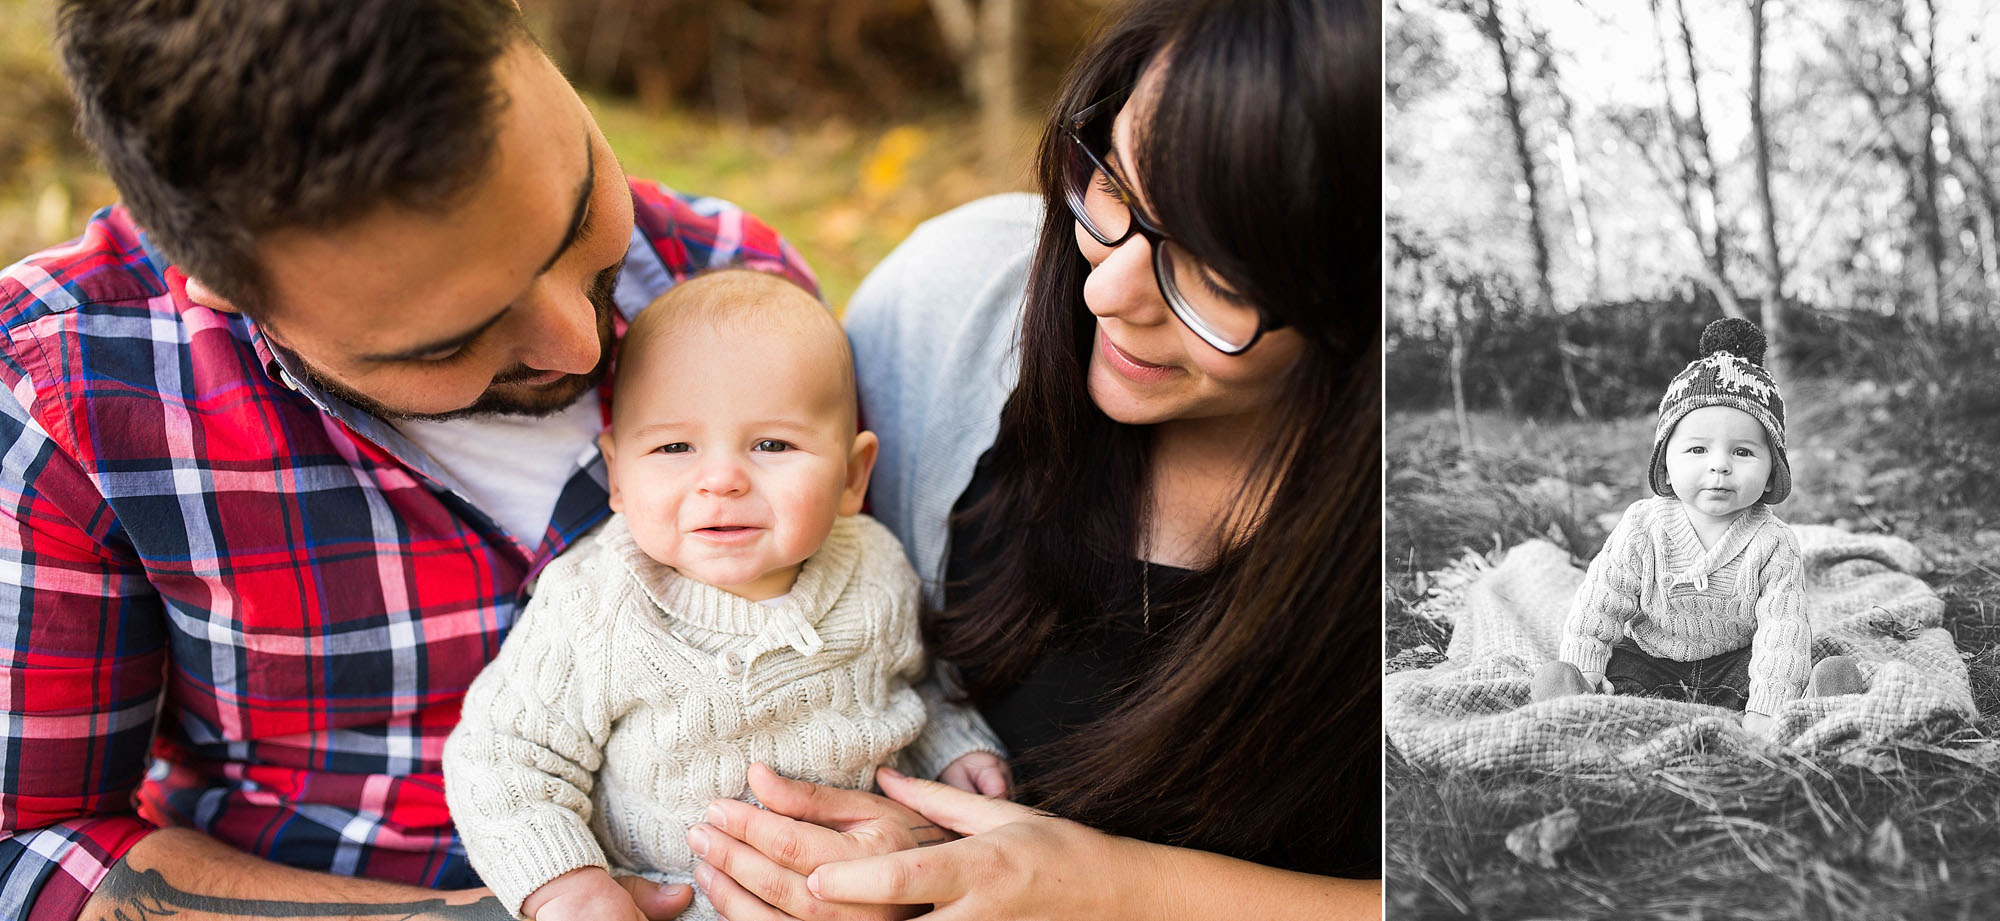 ashley vos photography seattle area lifestyle family and birth photography_0100.jpg